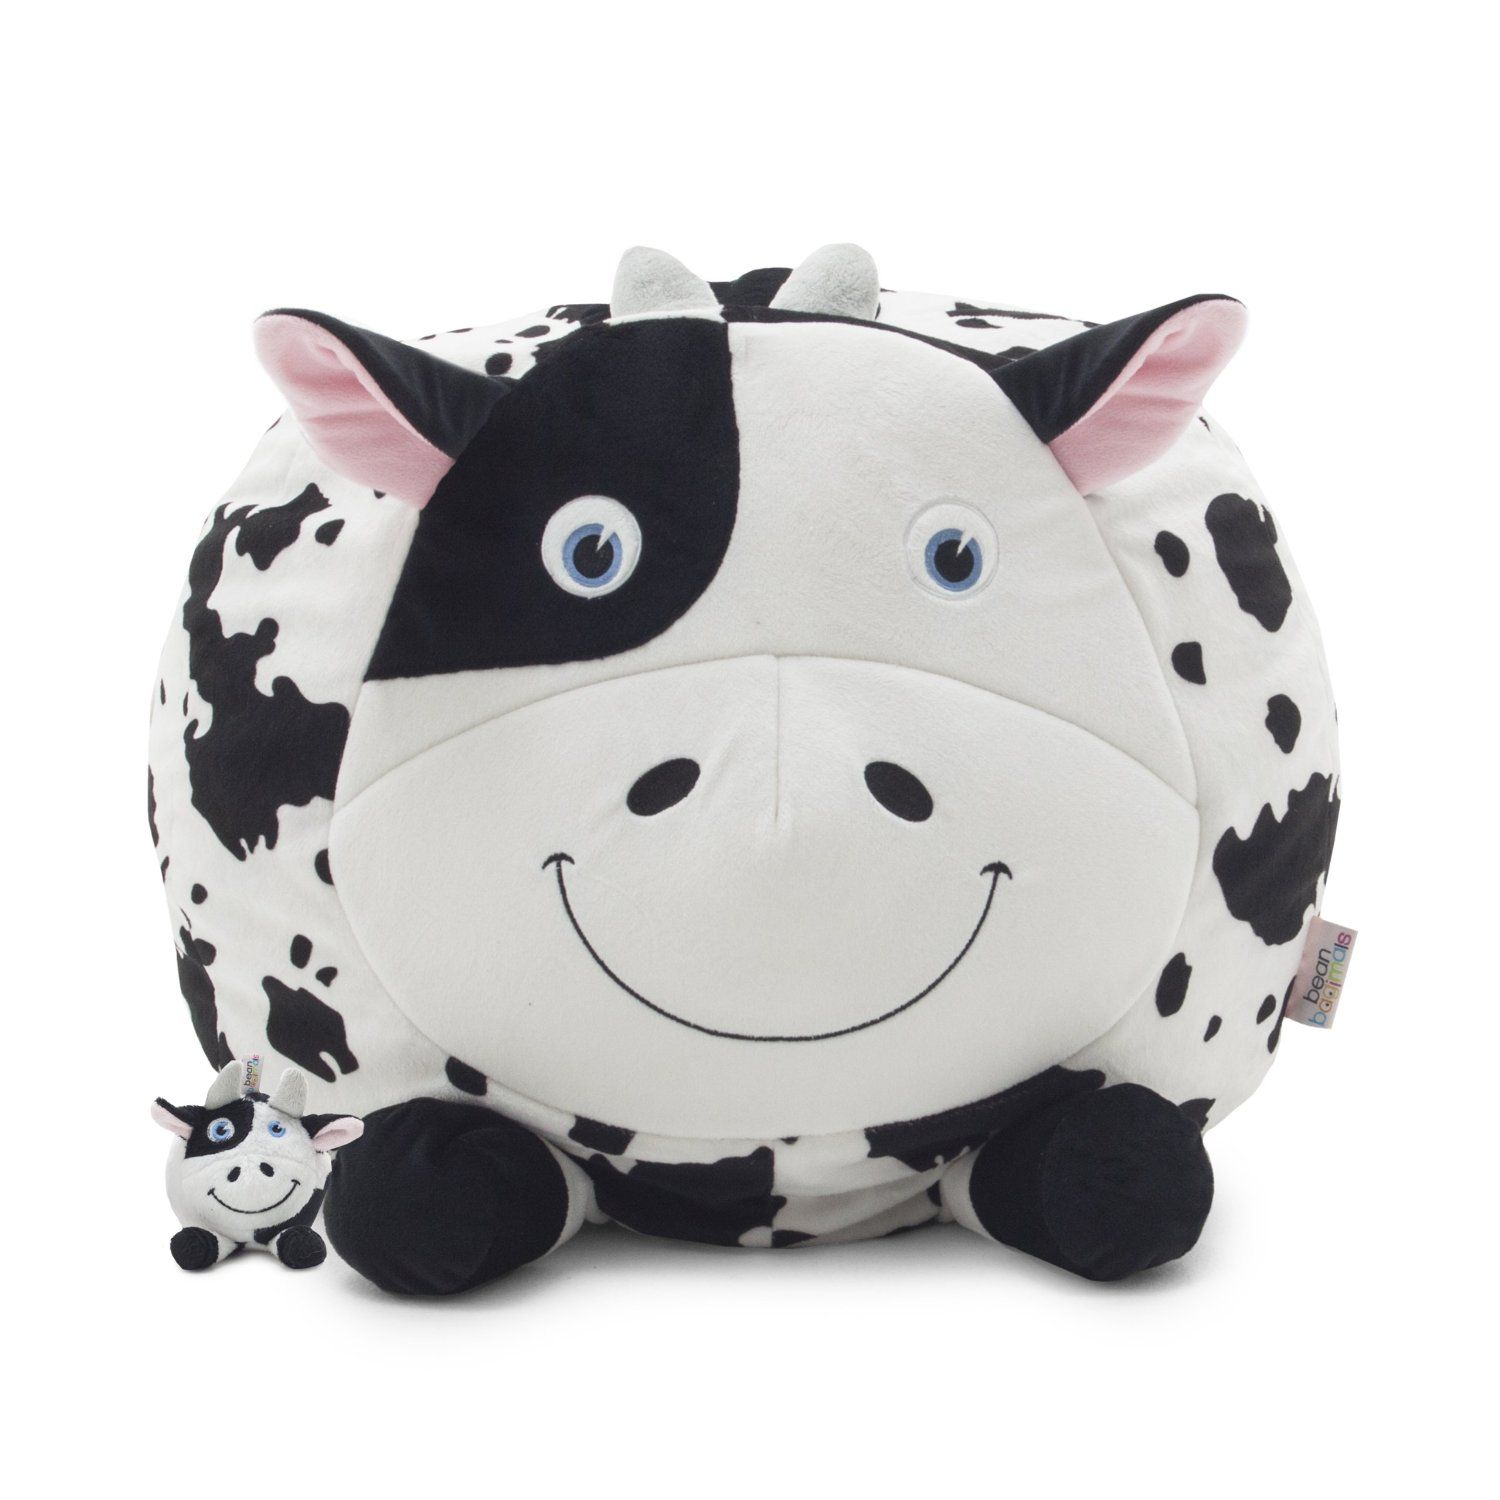 14 Comfortable Animal Kids Bean Bag Chairs Collection Cute Black And White Cow Shaped Kids Bean Bag Chai Small Bean Bag Chairs Small Bean Bags Kids Bean Bags